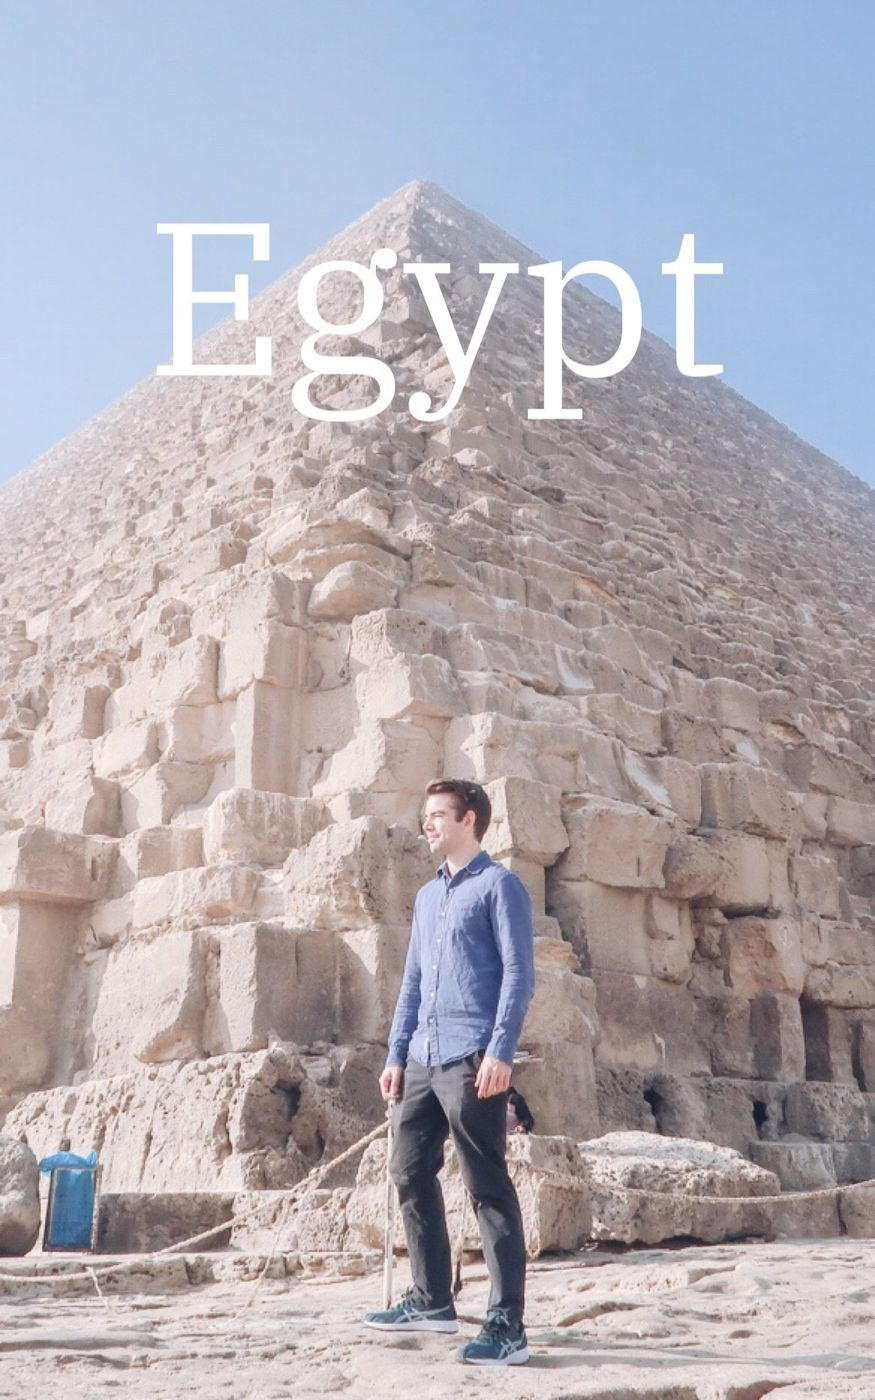 Egypt is a mesmerizing place that should be on everyone's bucket list!